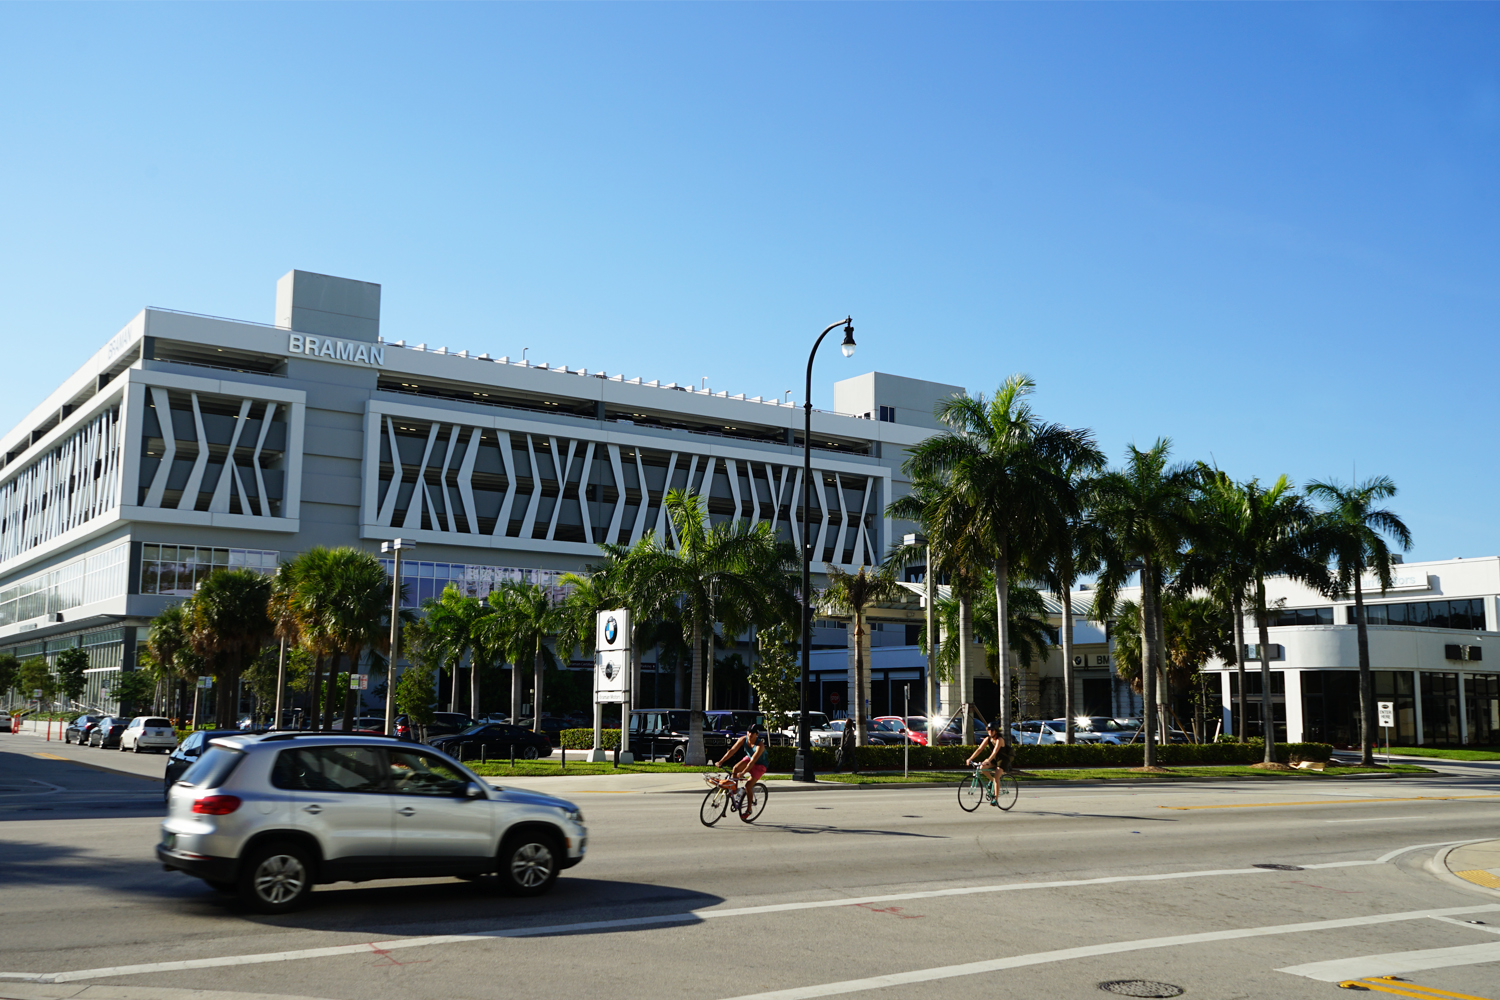 Metro Signs produced and installed large metal fabricated letters for Braman Motors Miami.